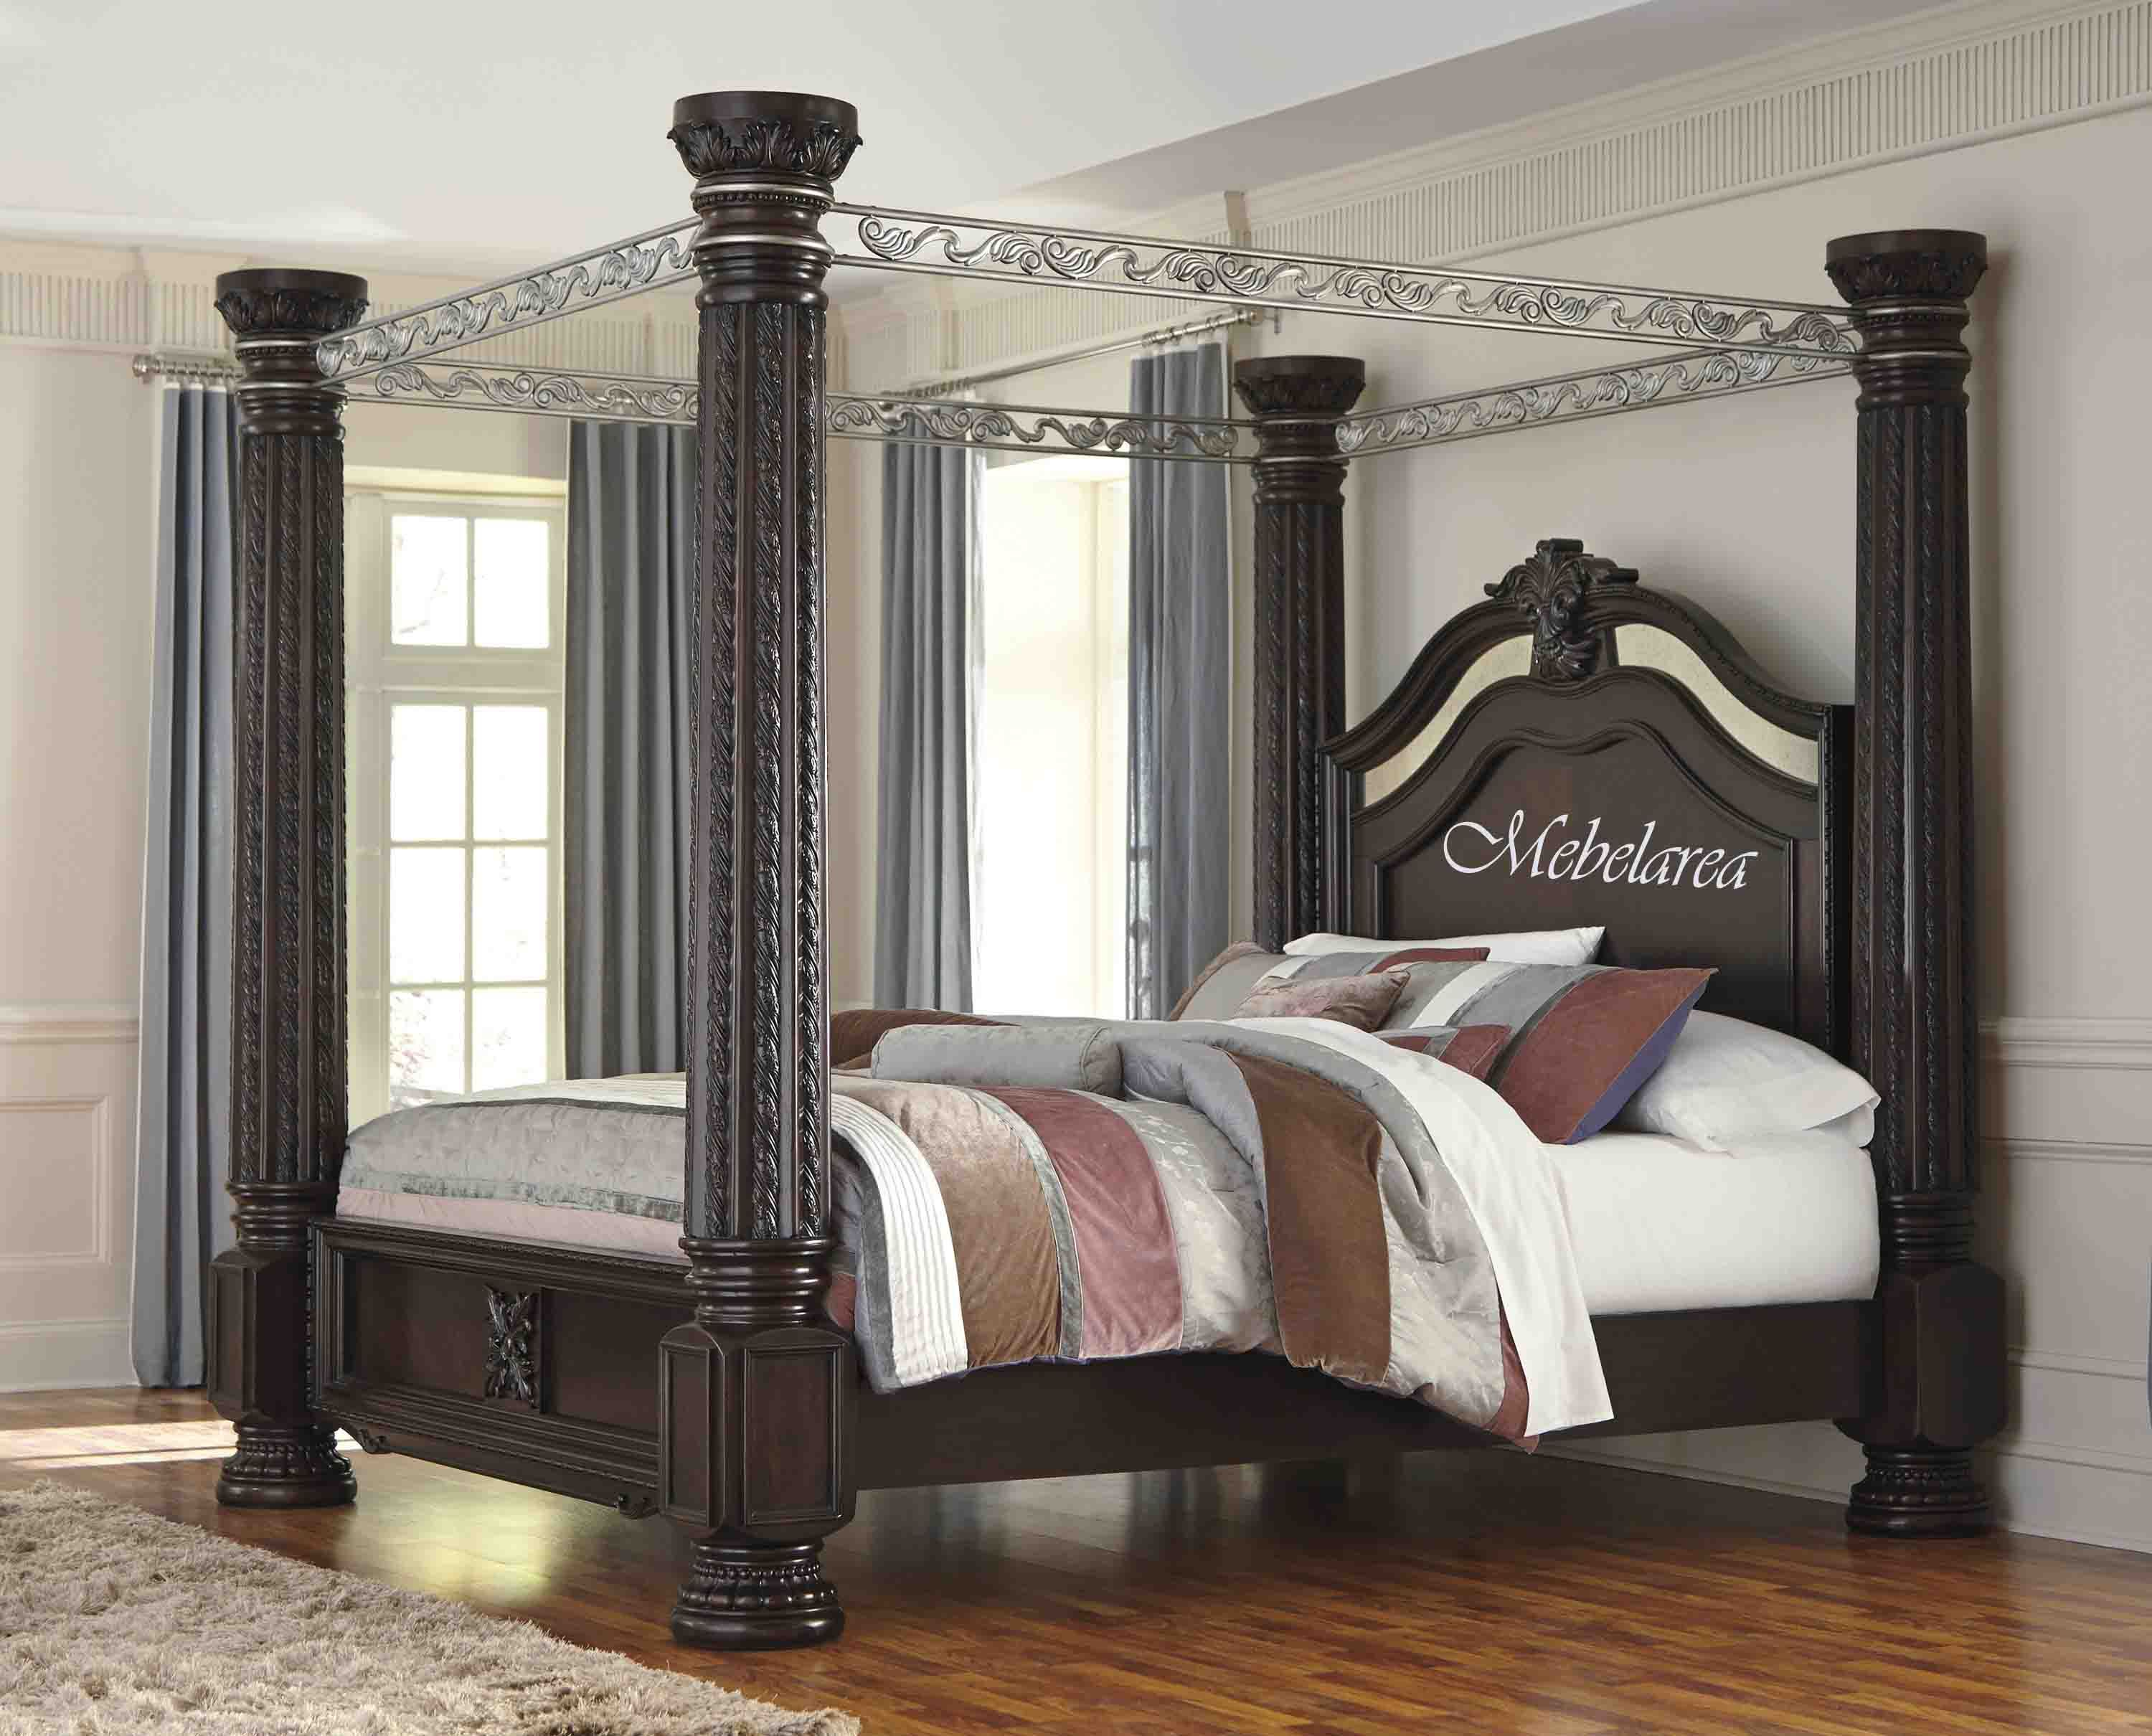 frames for bedroom projects size wooden and mattress white sets combined side bed beautiful black diy cool buy headboard nu cream king carpet frame table store the brackets interior ana reclaimed bedding platform of furniture without cheap with headboards simple magnificent brown full